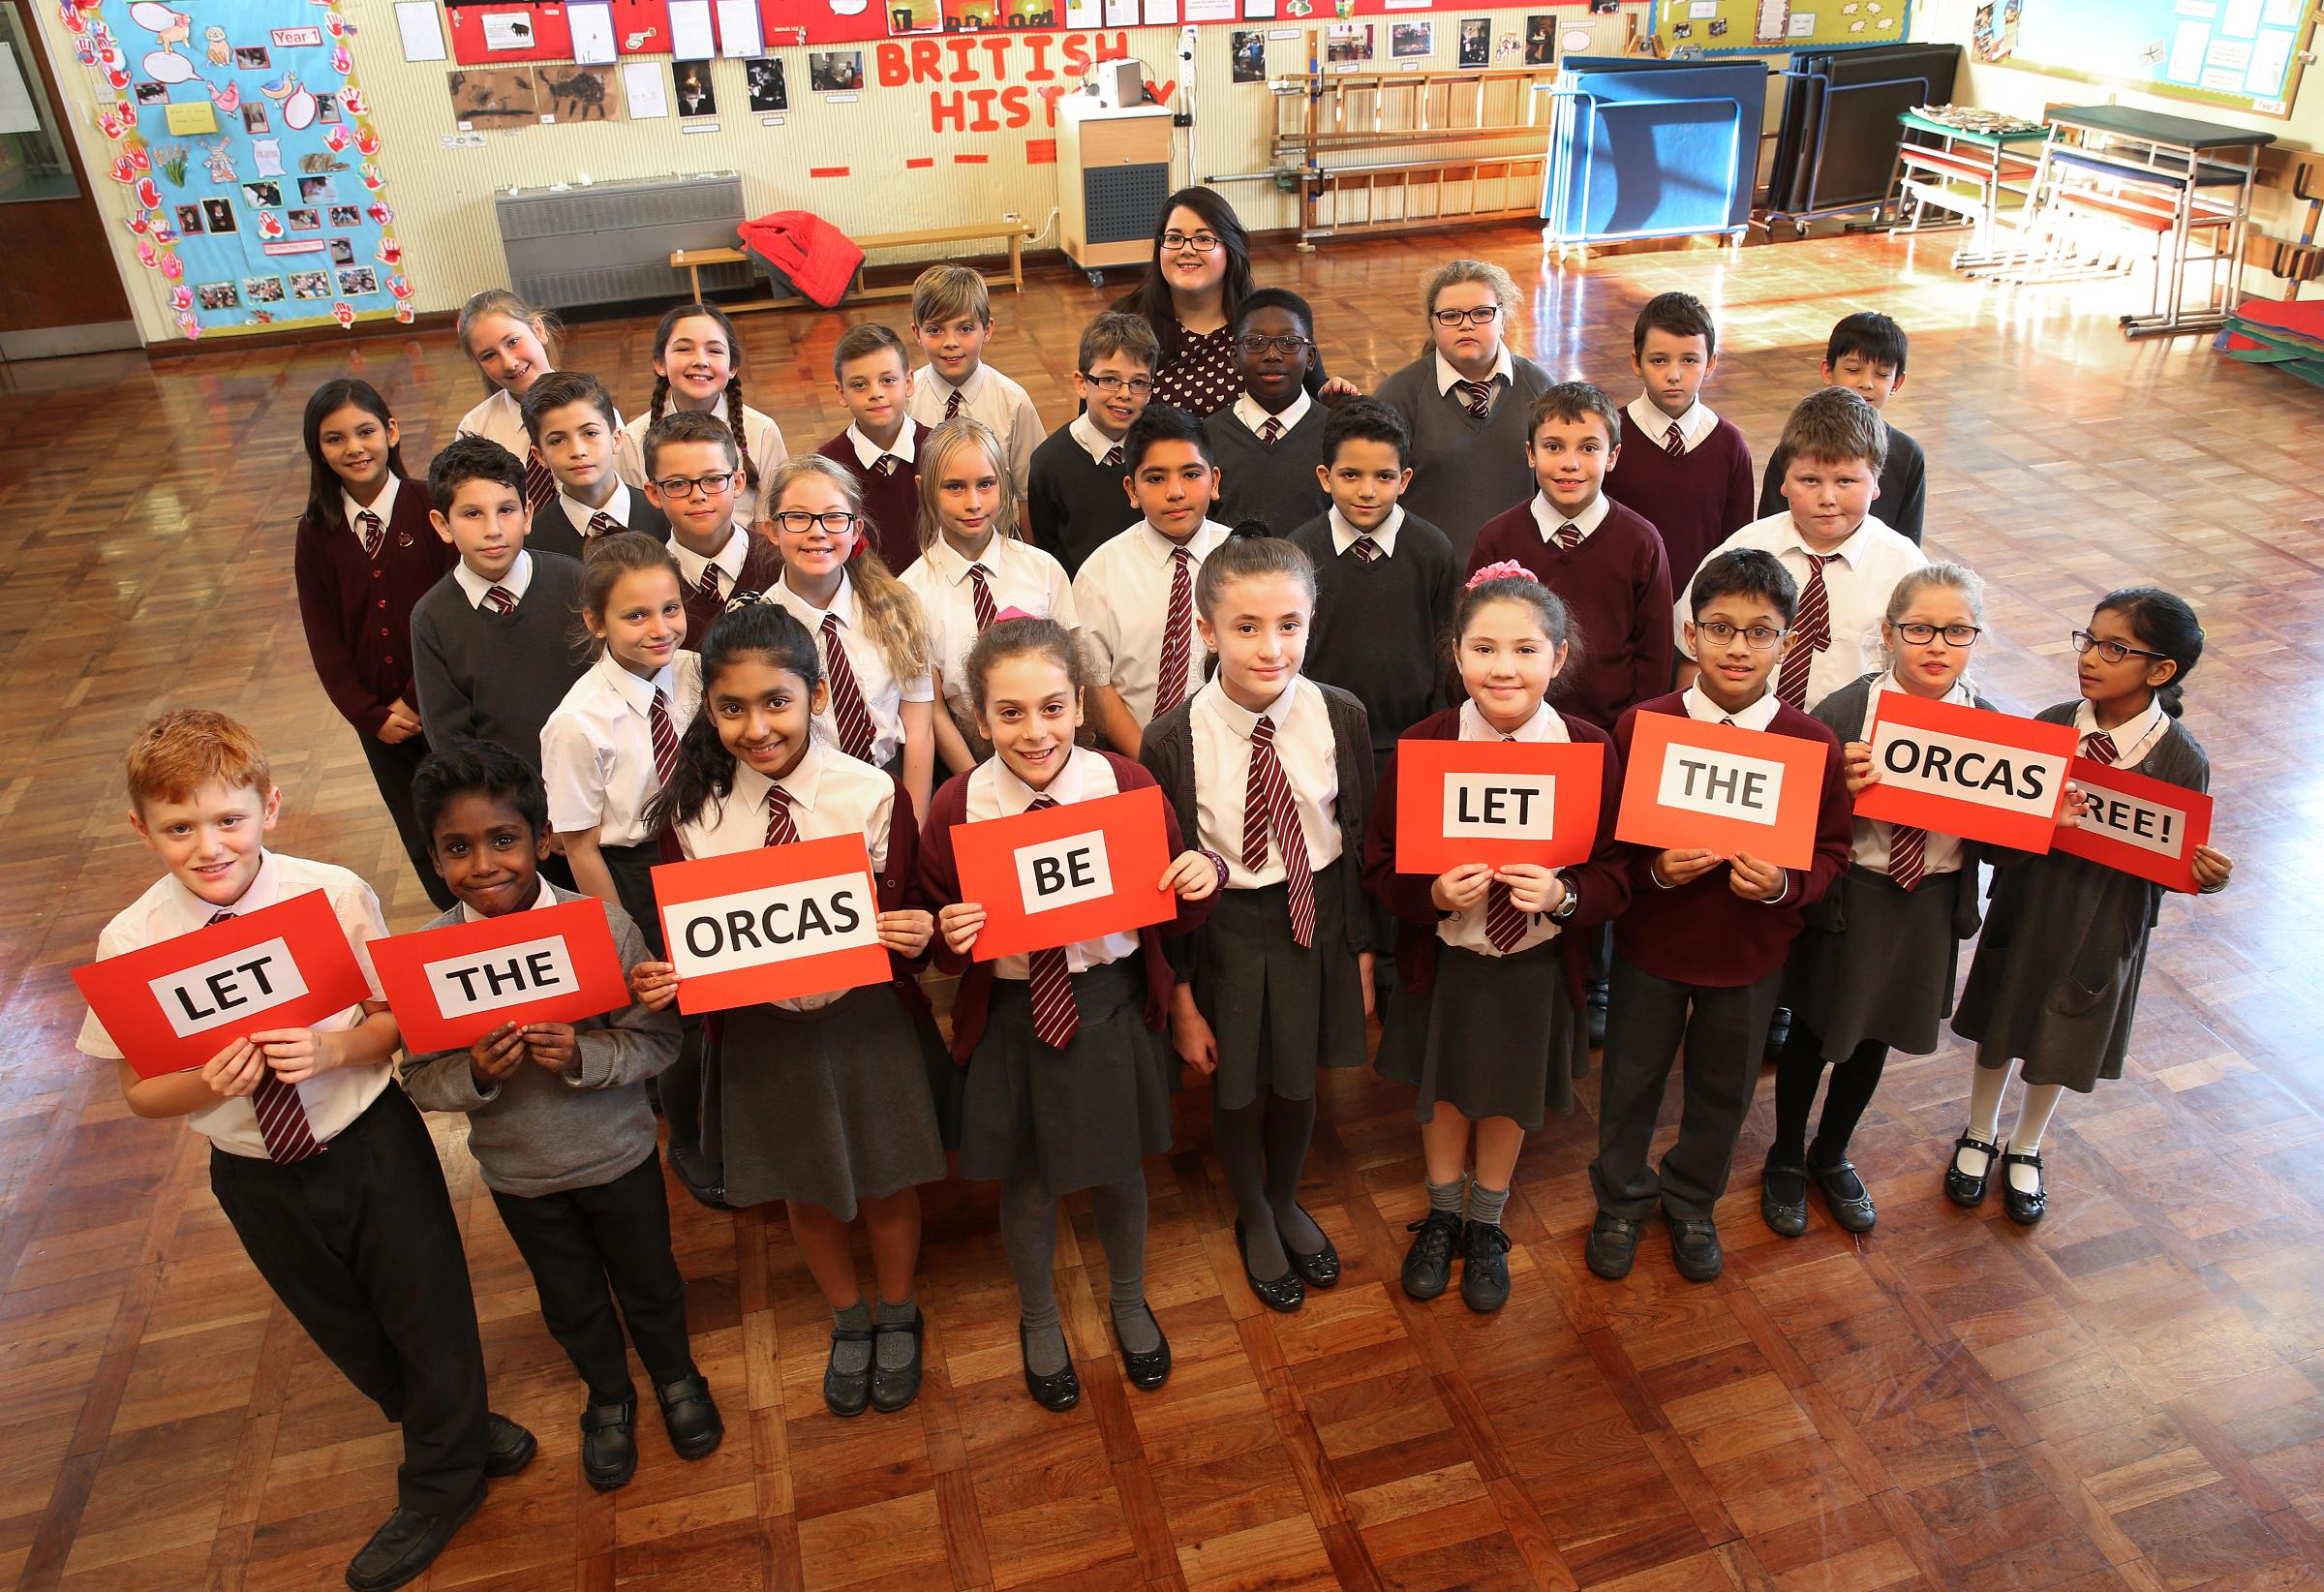 Year 6 pupils at Bushey Heath Primary set up petition to stop orca captivity